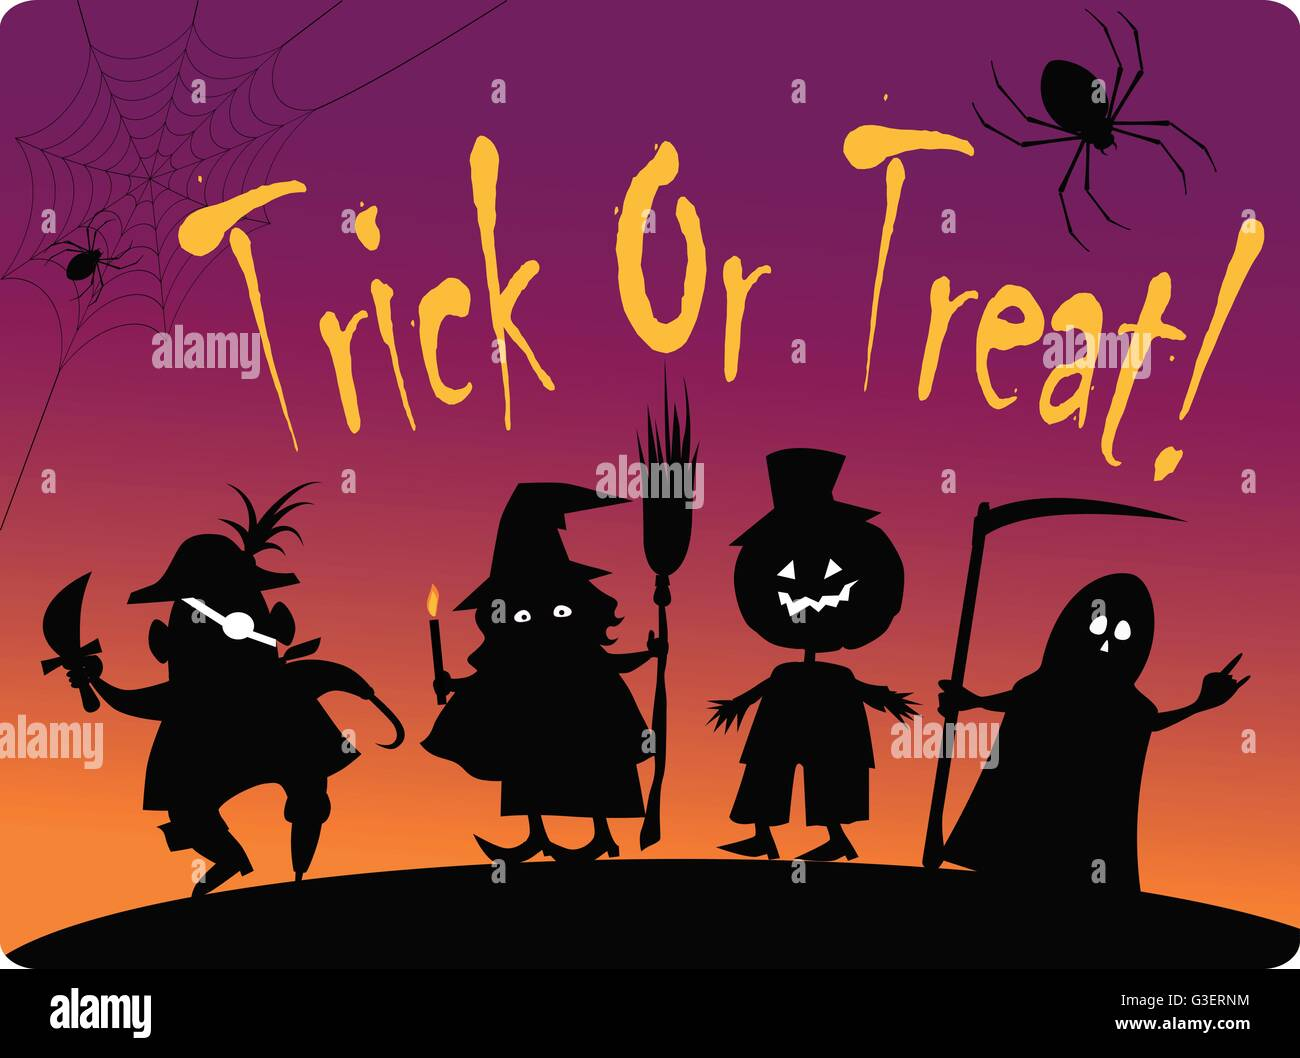 Halloween Trick Or Treat Silhouette.Trick Or Treat Card With Silhouettes Of Four Cute Halloween